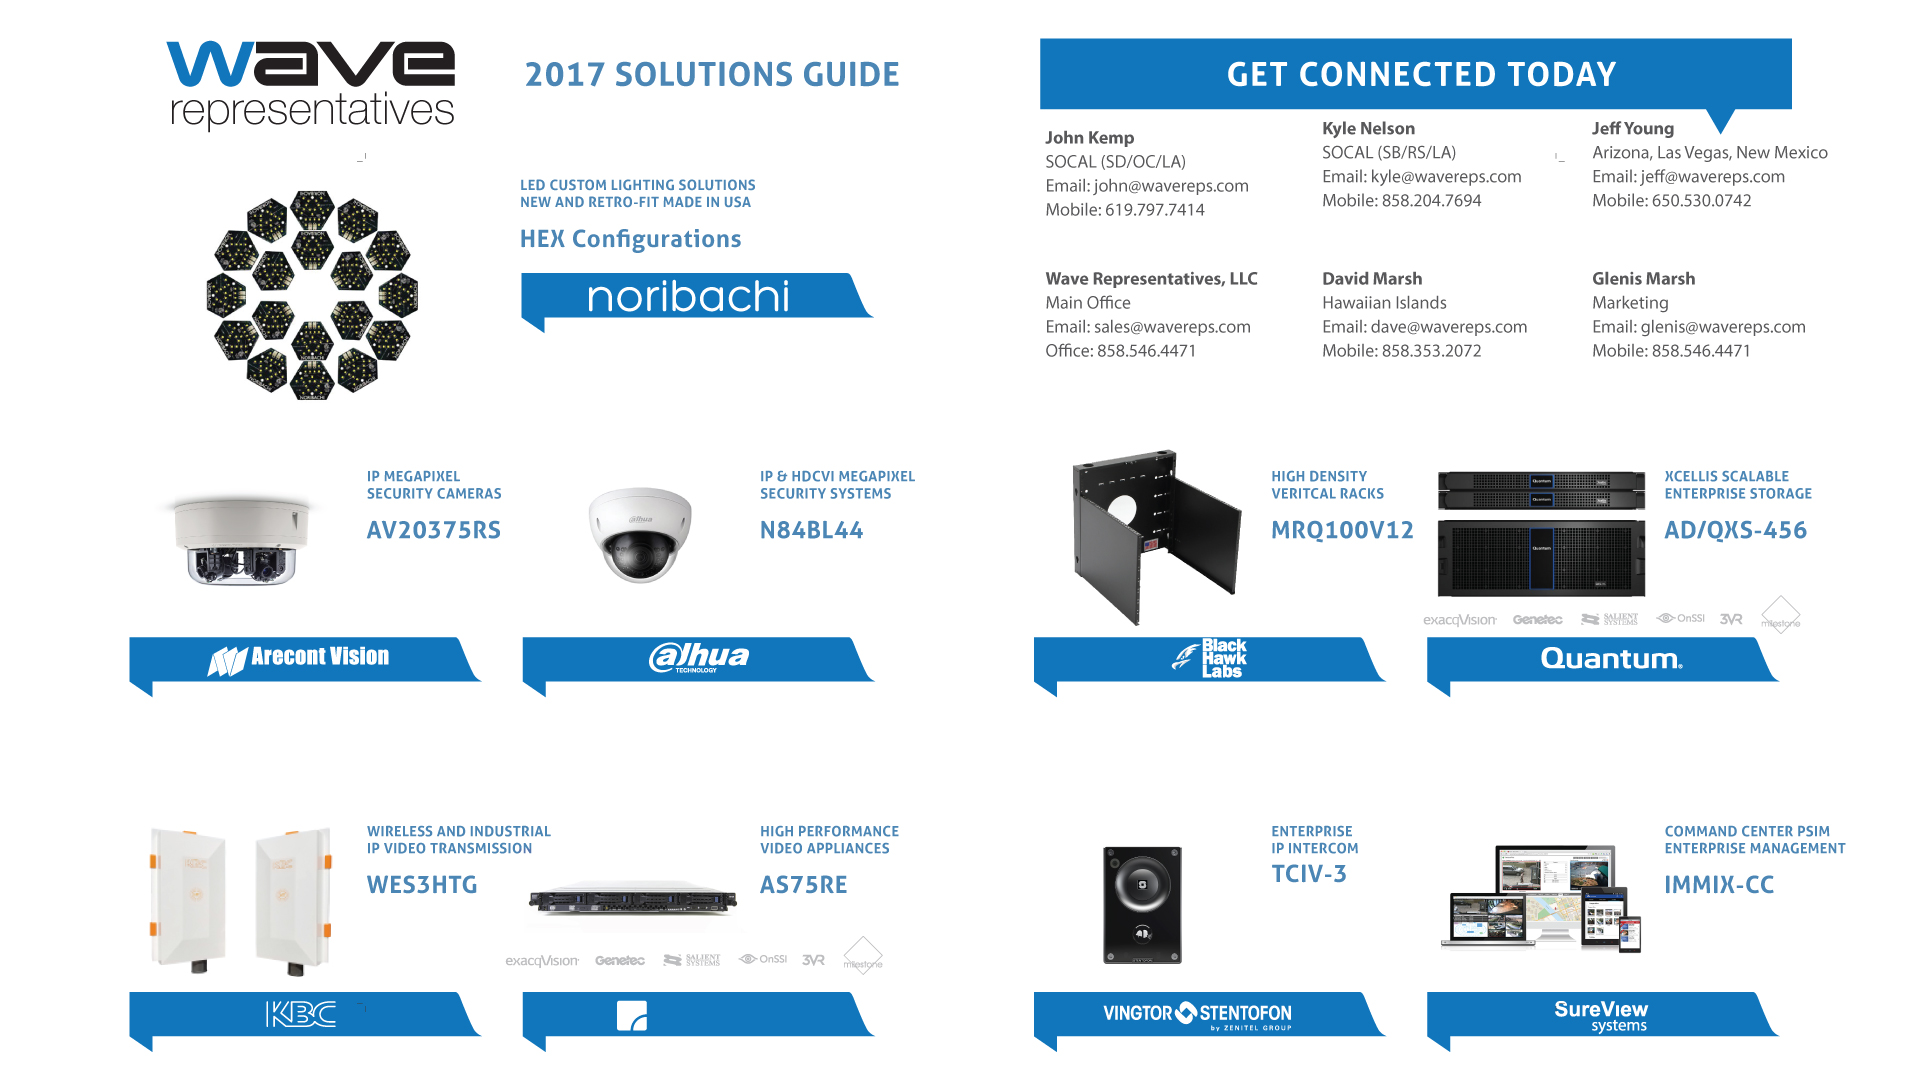 SOLUTIONS GUIDE 2017